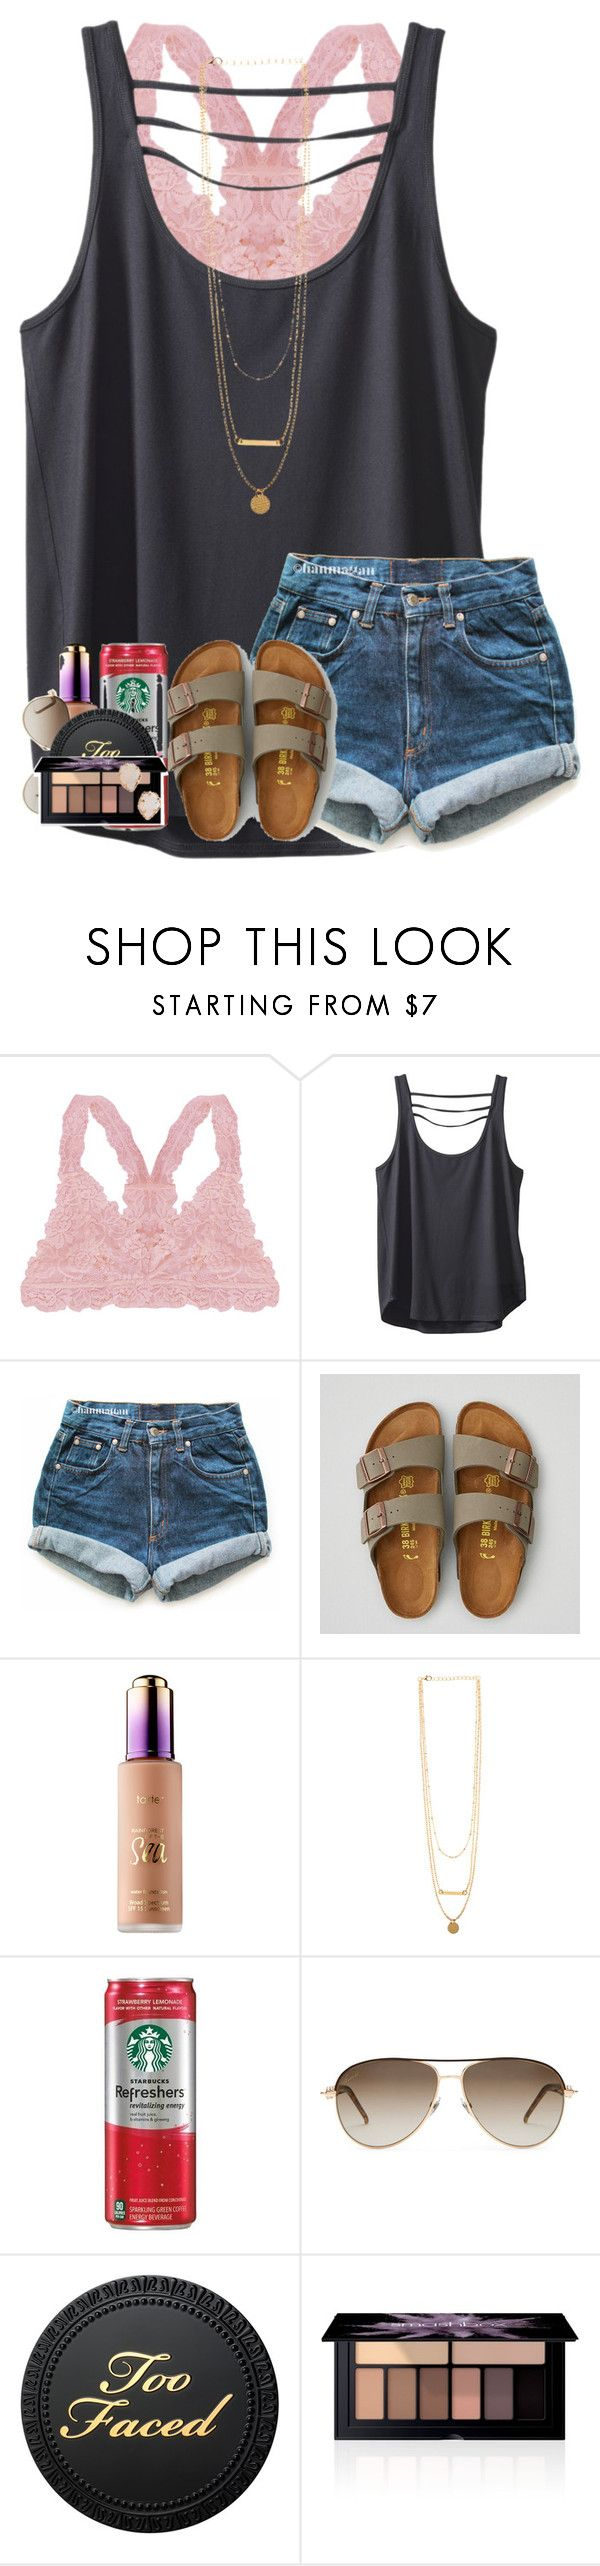 """take time and do what makes your soul happy"" by kyliegrace ❤ liked on Polyvore featuring beauty, Humble Chic, Kavu, Levi's, American Eagle Outfitters, Gucci, Smashbox and Kendra Scott"